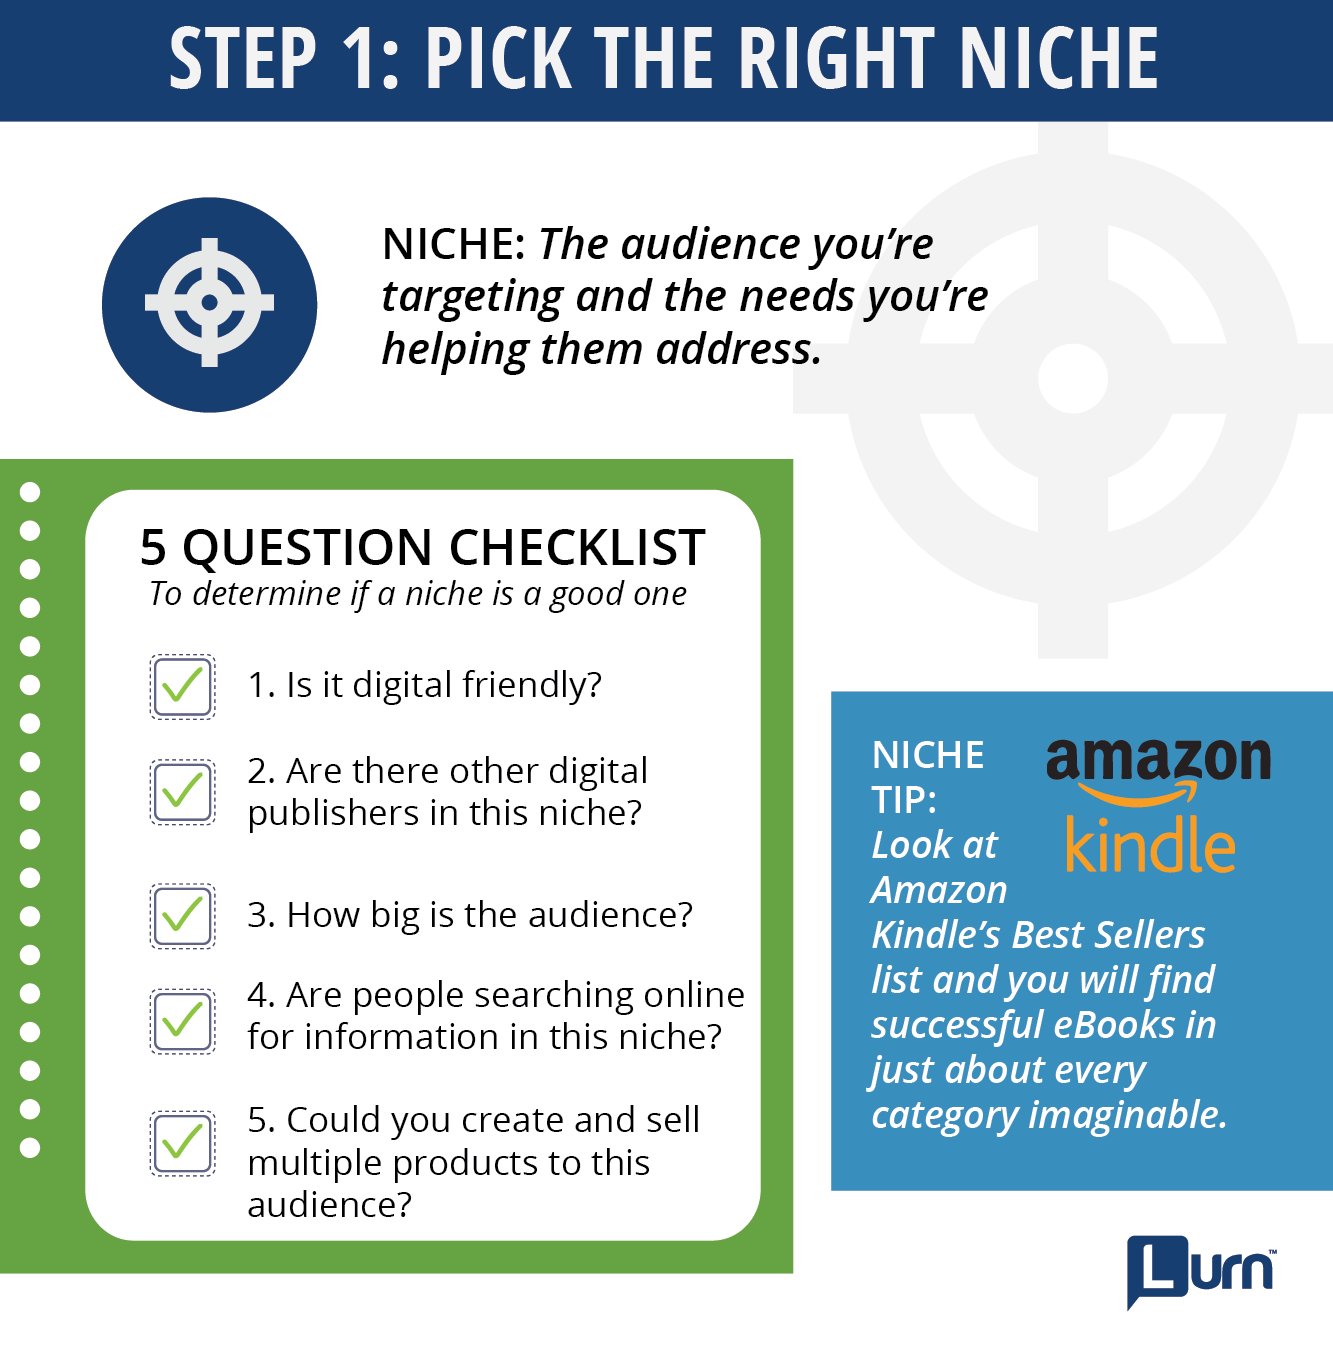 Step 1: Pick The Right Niche